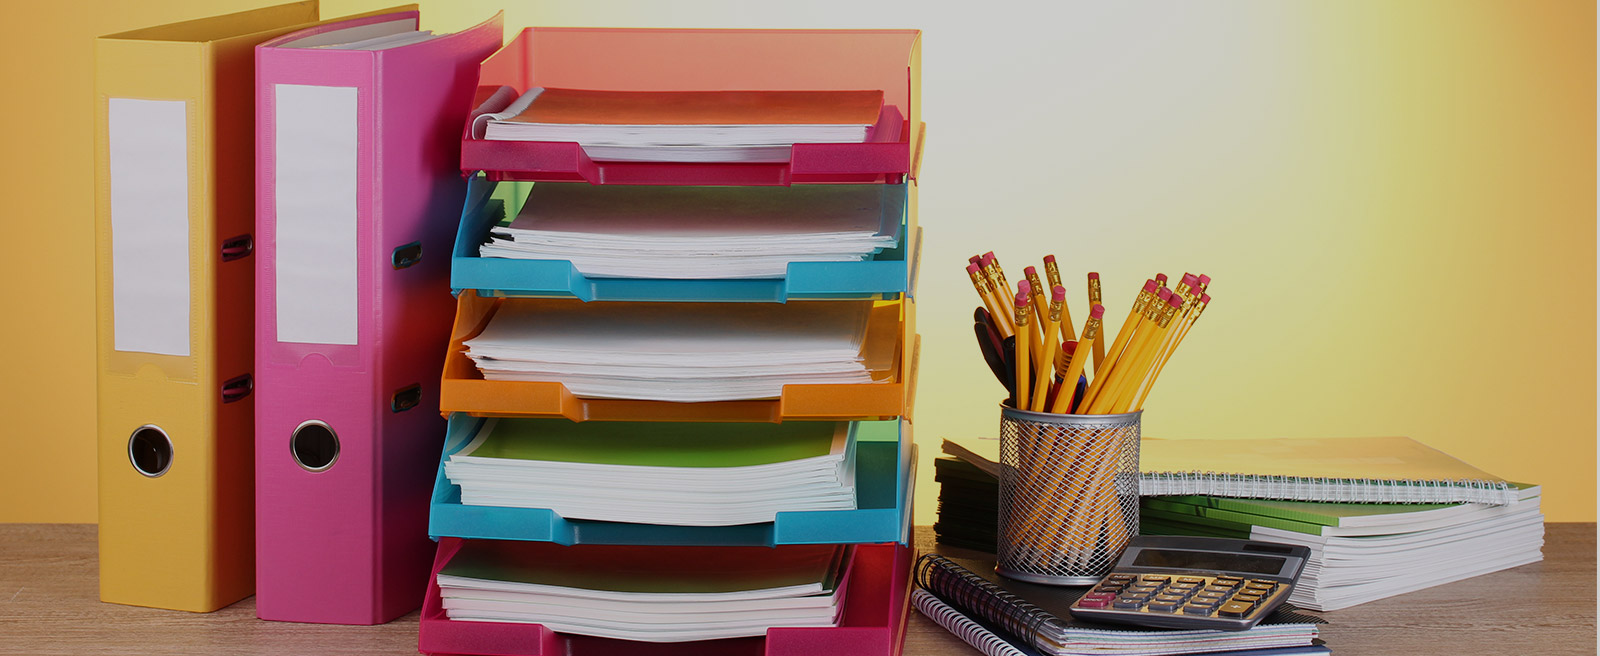 6 Basic Office Supplies Every Business Needs